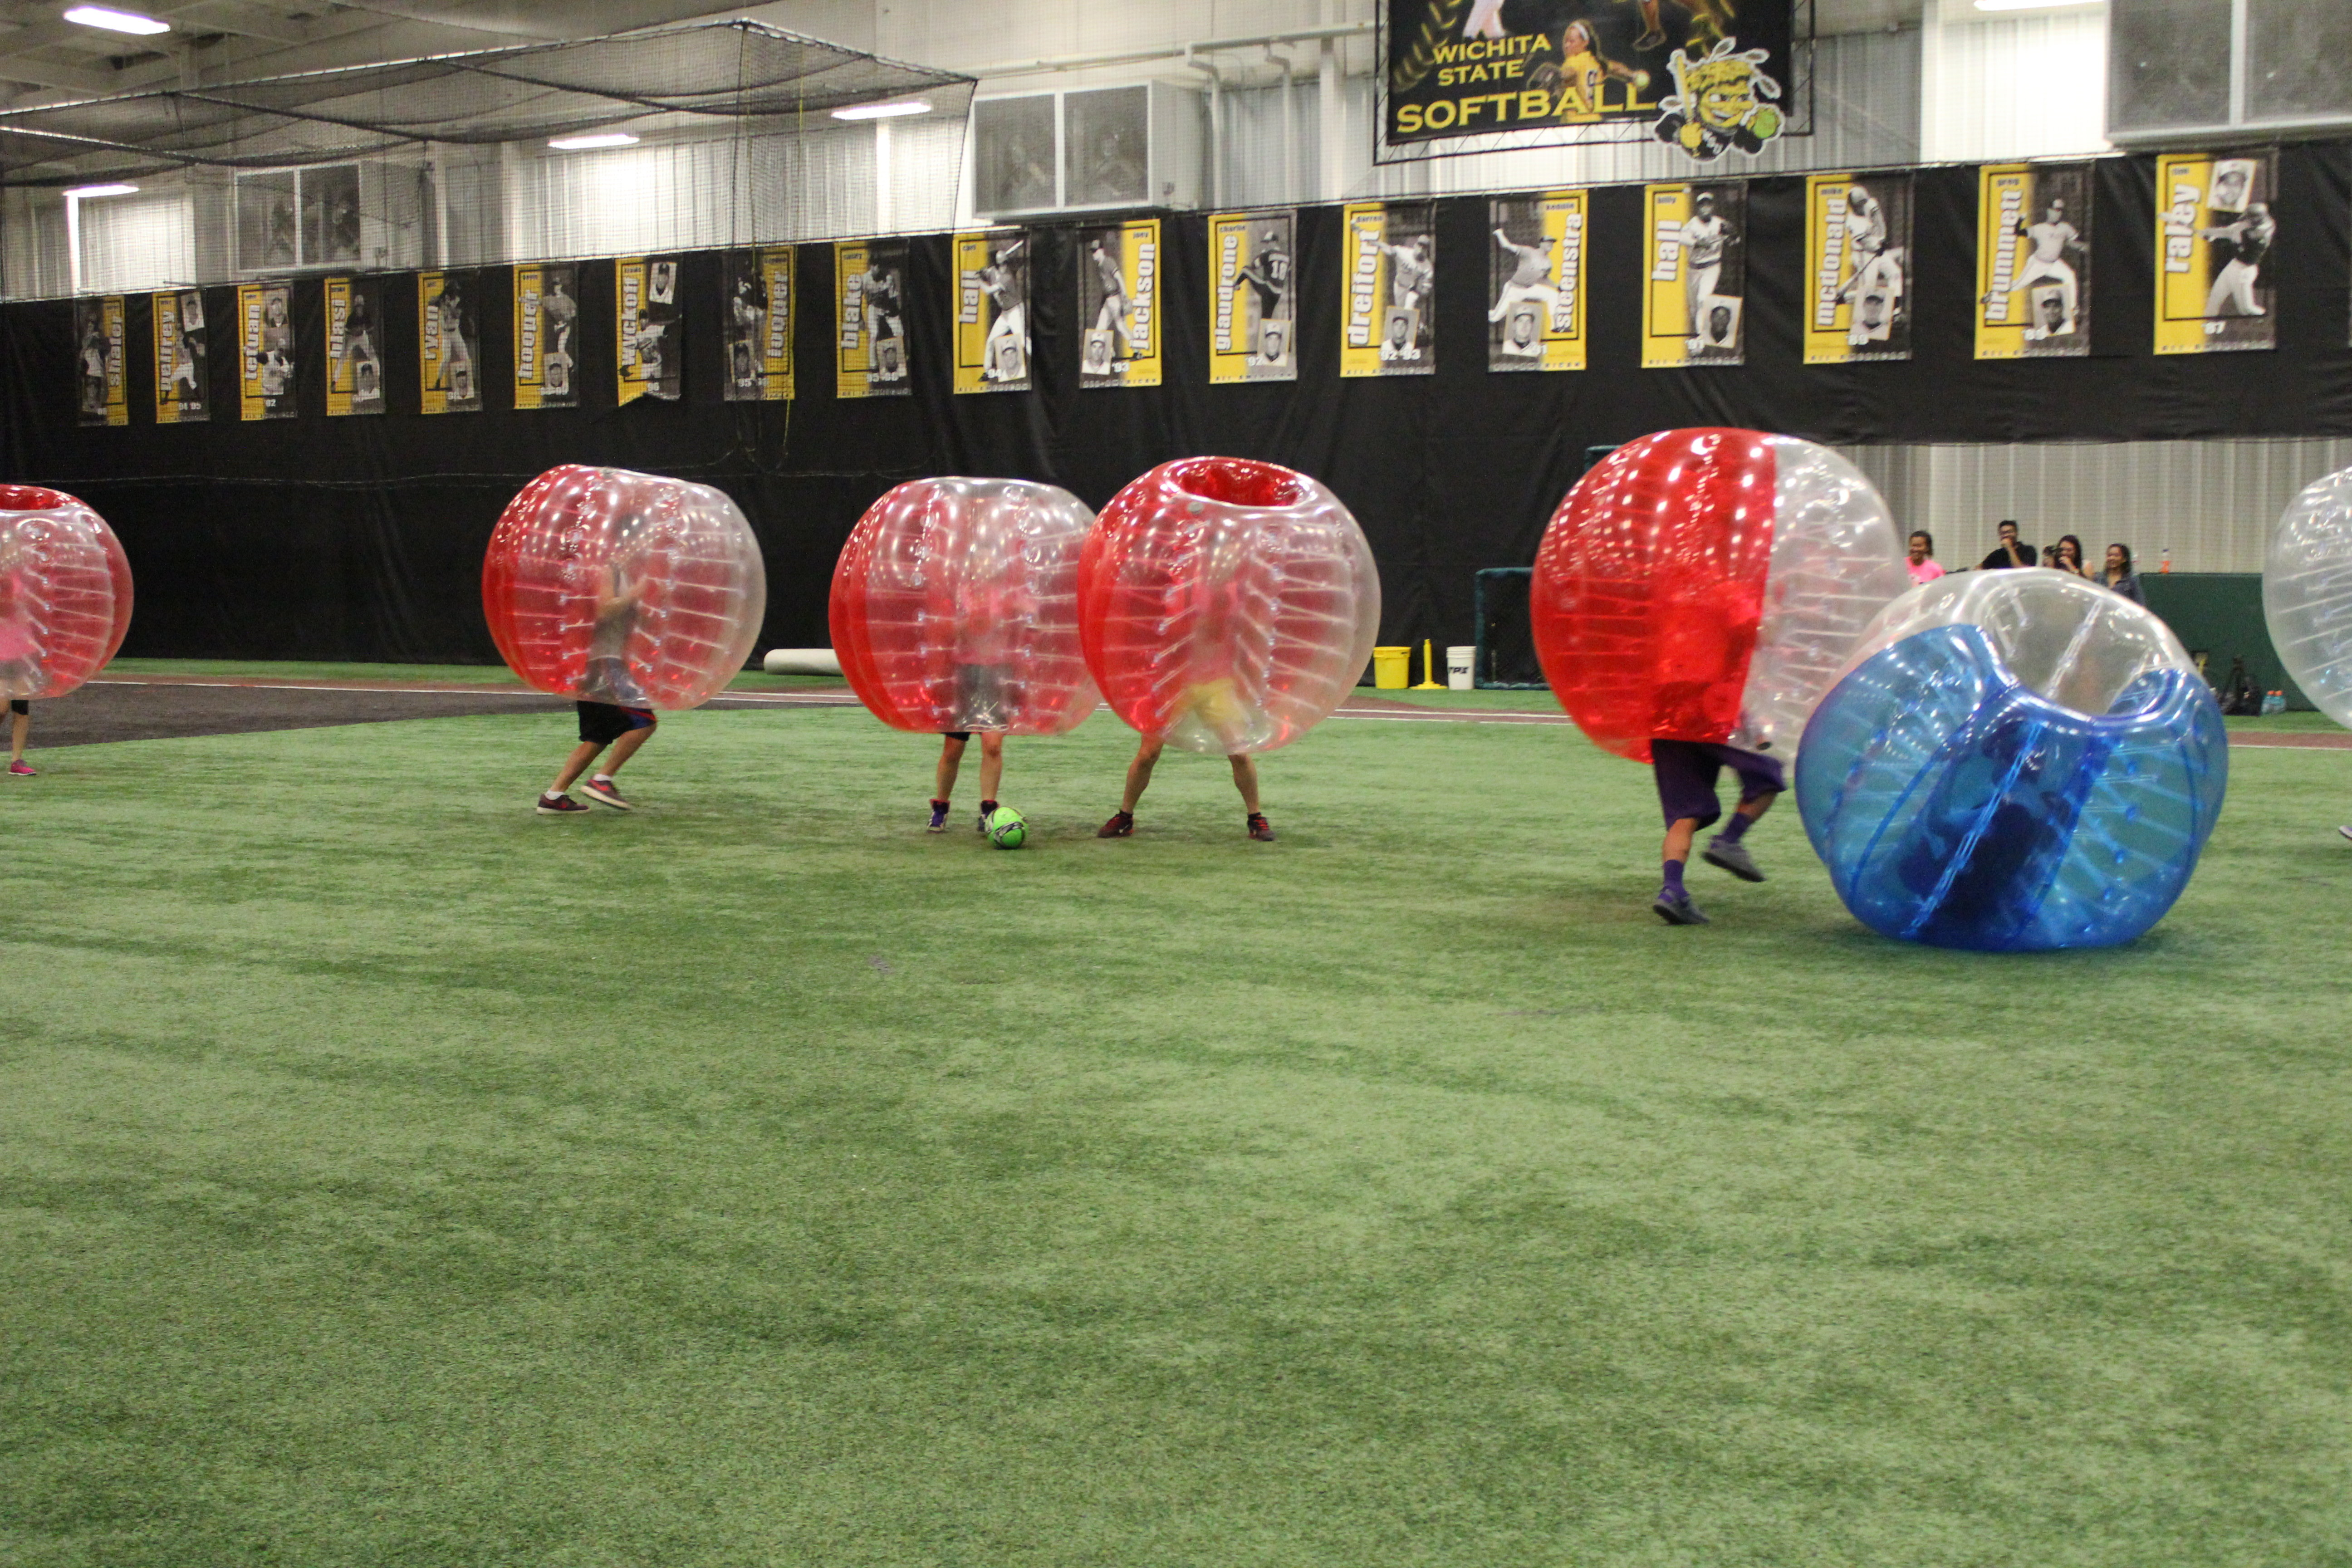 A group playing bubble soccer: people running and playing soccer while their upperbodies are encased in inflatable spheres